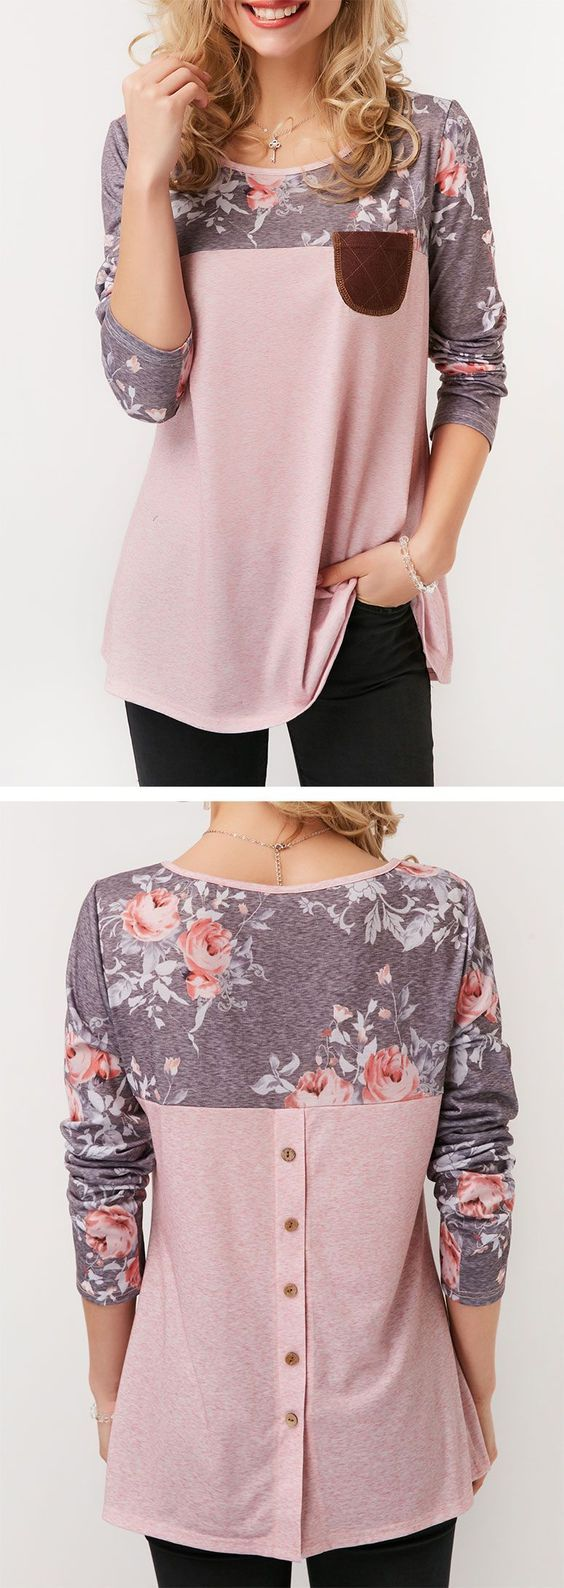 Patchwork Printed Round Neck Button Back T Shirt, free shipping worldwide, check them out - http://sorihe.com/blusademujer/2018/03/16/patchwork-printed-round-neck-button-back-t-shirt-free-shipping-worldwide-check-them-out/ #women'sblouse #blouse #ladiestops #womensshirts #topsforwomen #shirtsforwomen #ladiesblouse #blackblouse #women'sshirts #womenshirt #whiteblouse #blackshirtwomens #longtopsforwomen #long tops #women'sshirtsandblouses #cutetopsforwomen #shirtsandblouses #dressytops…